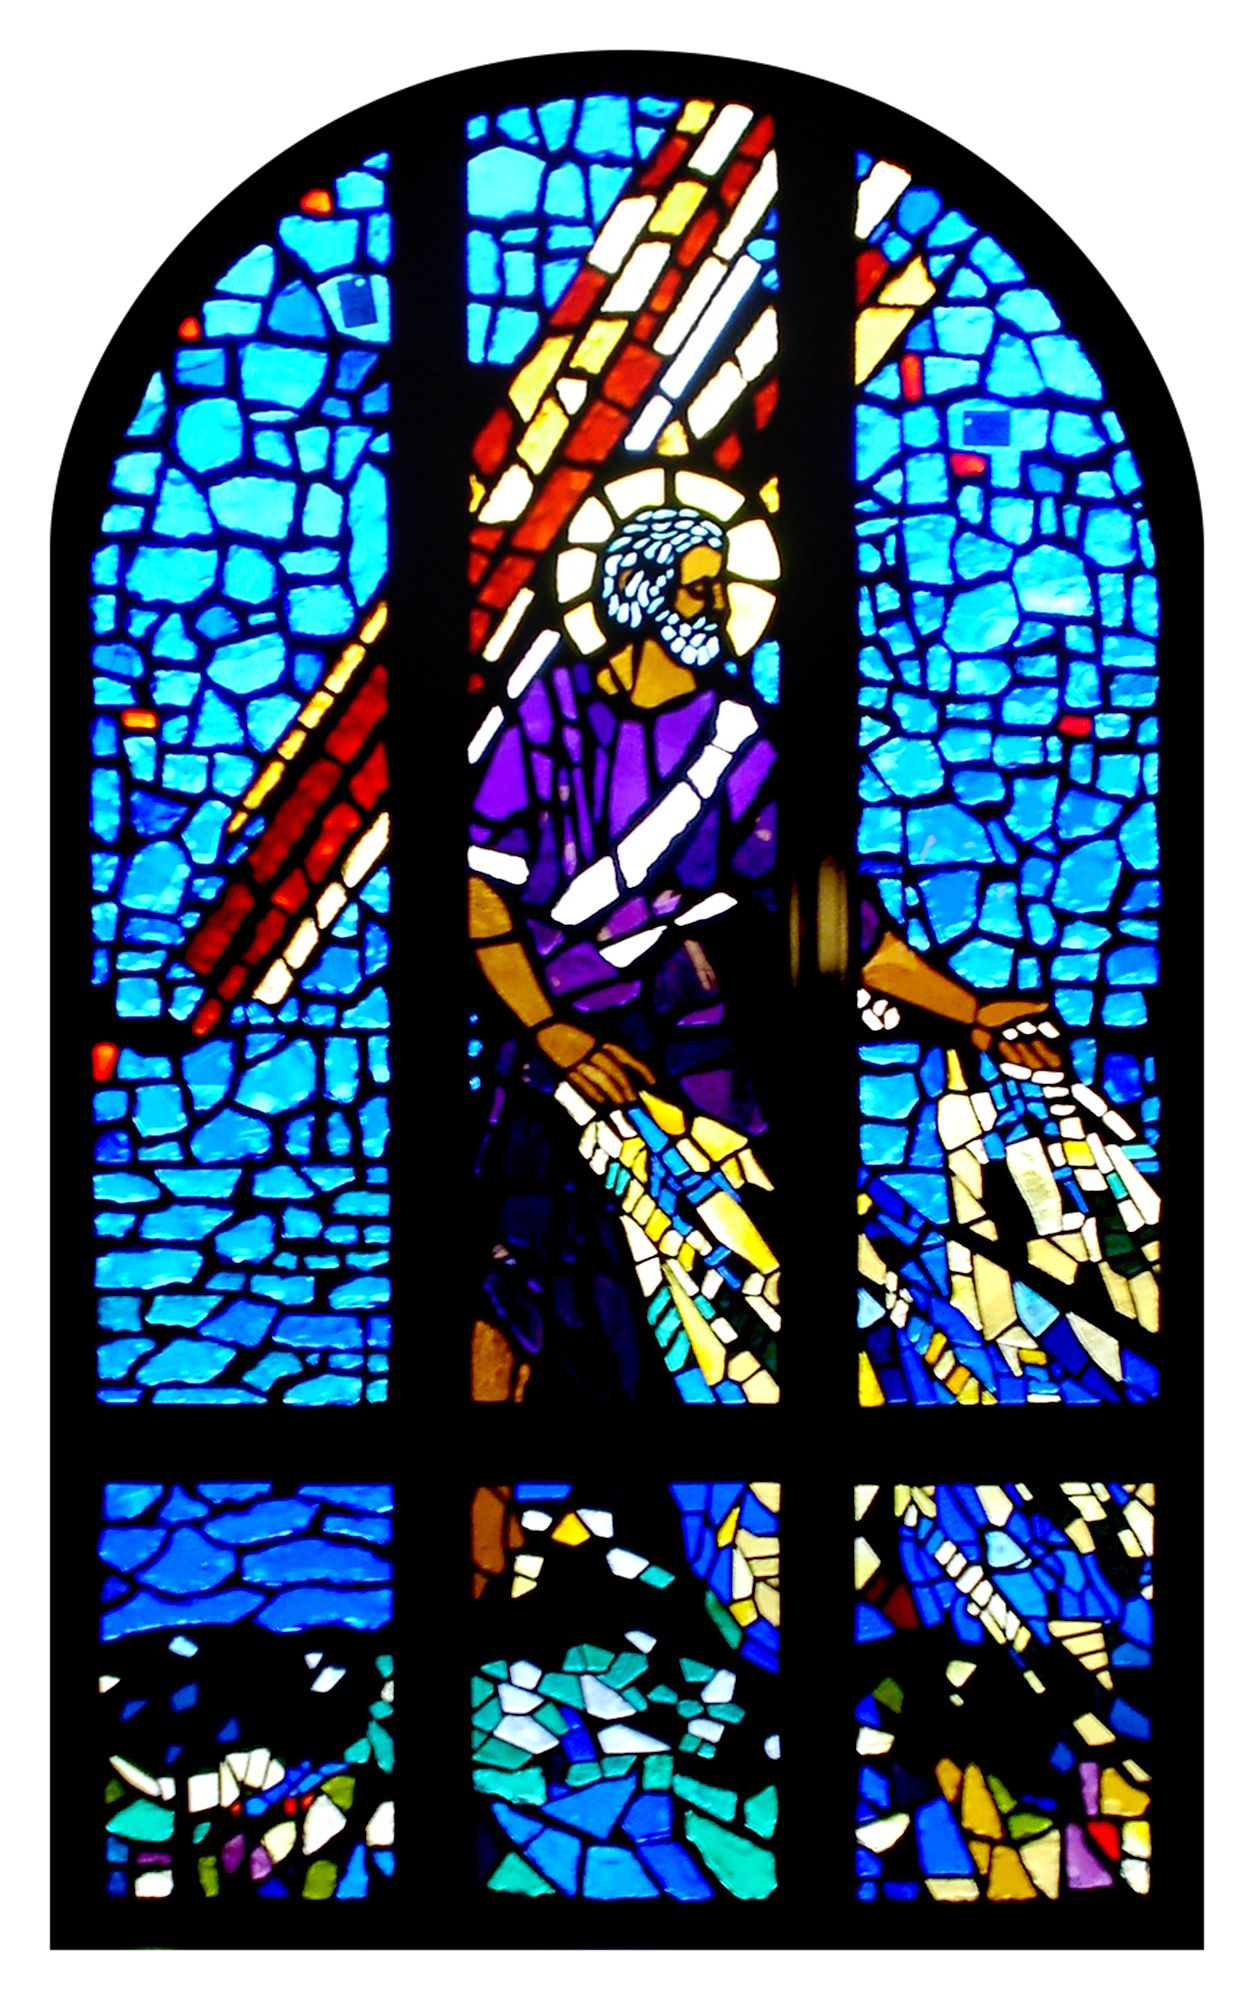 Faceted Glass, Greater St. Paul Church, Oakland, CA